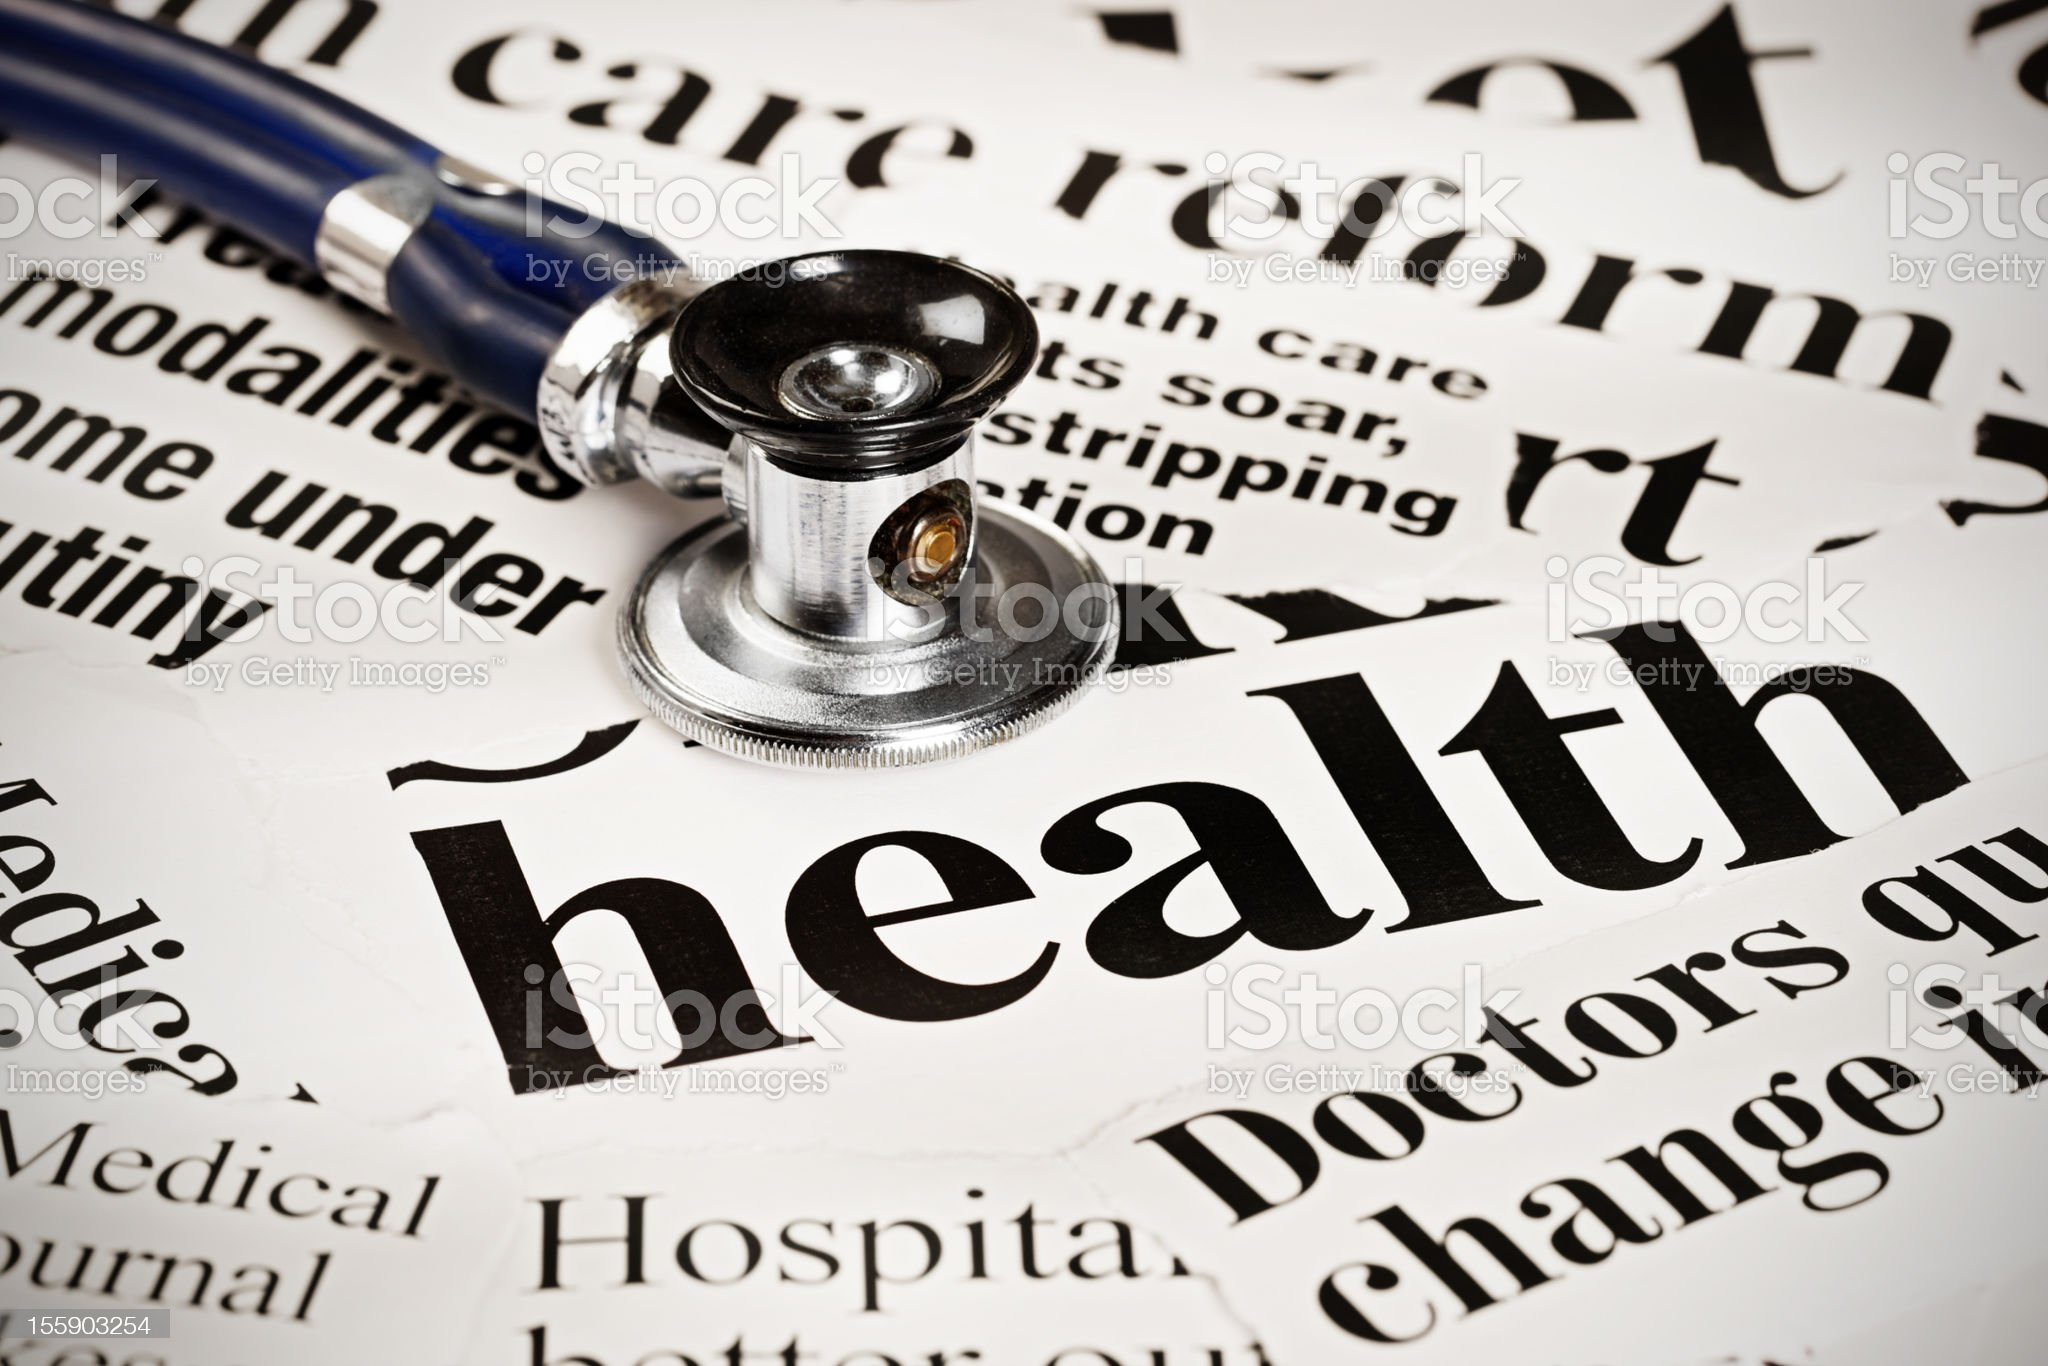 Stethoscope on press headlines regarding medical matters royalty-free stock photo